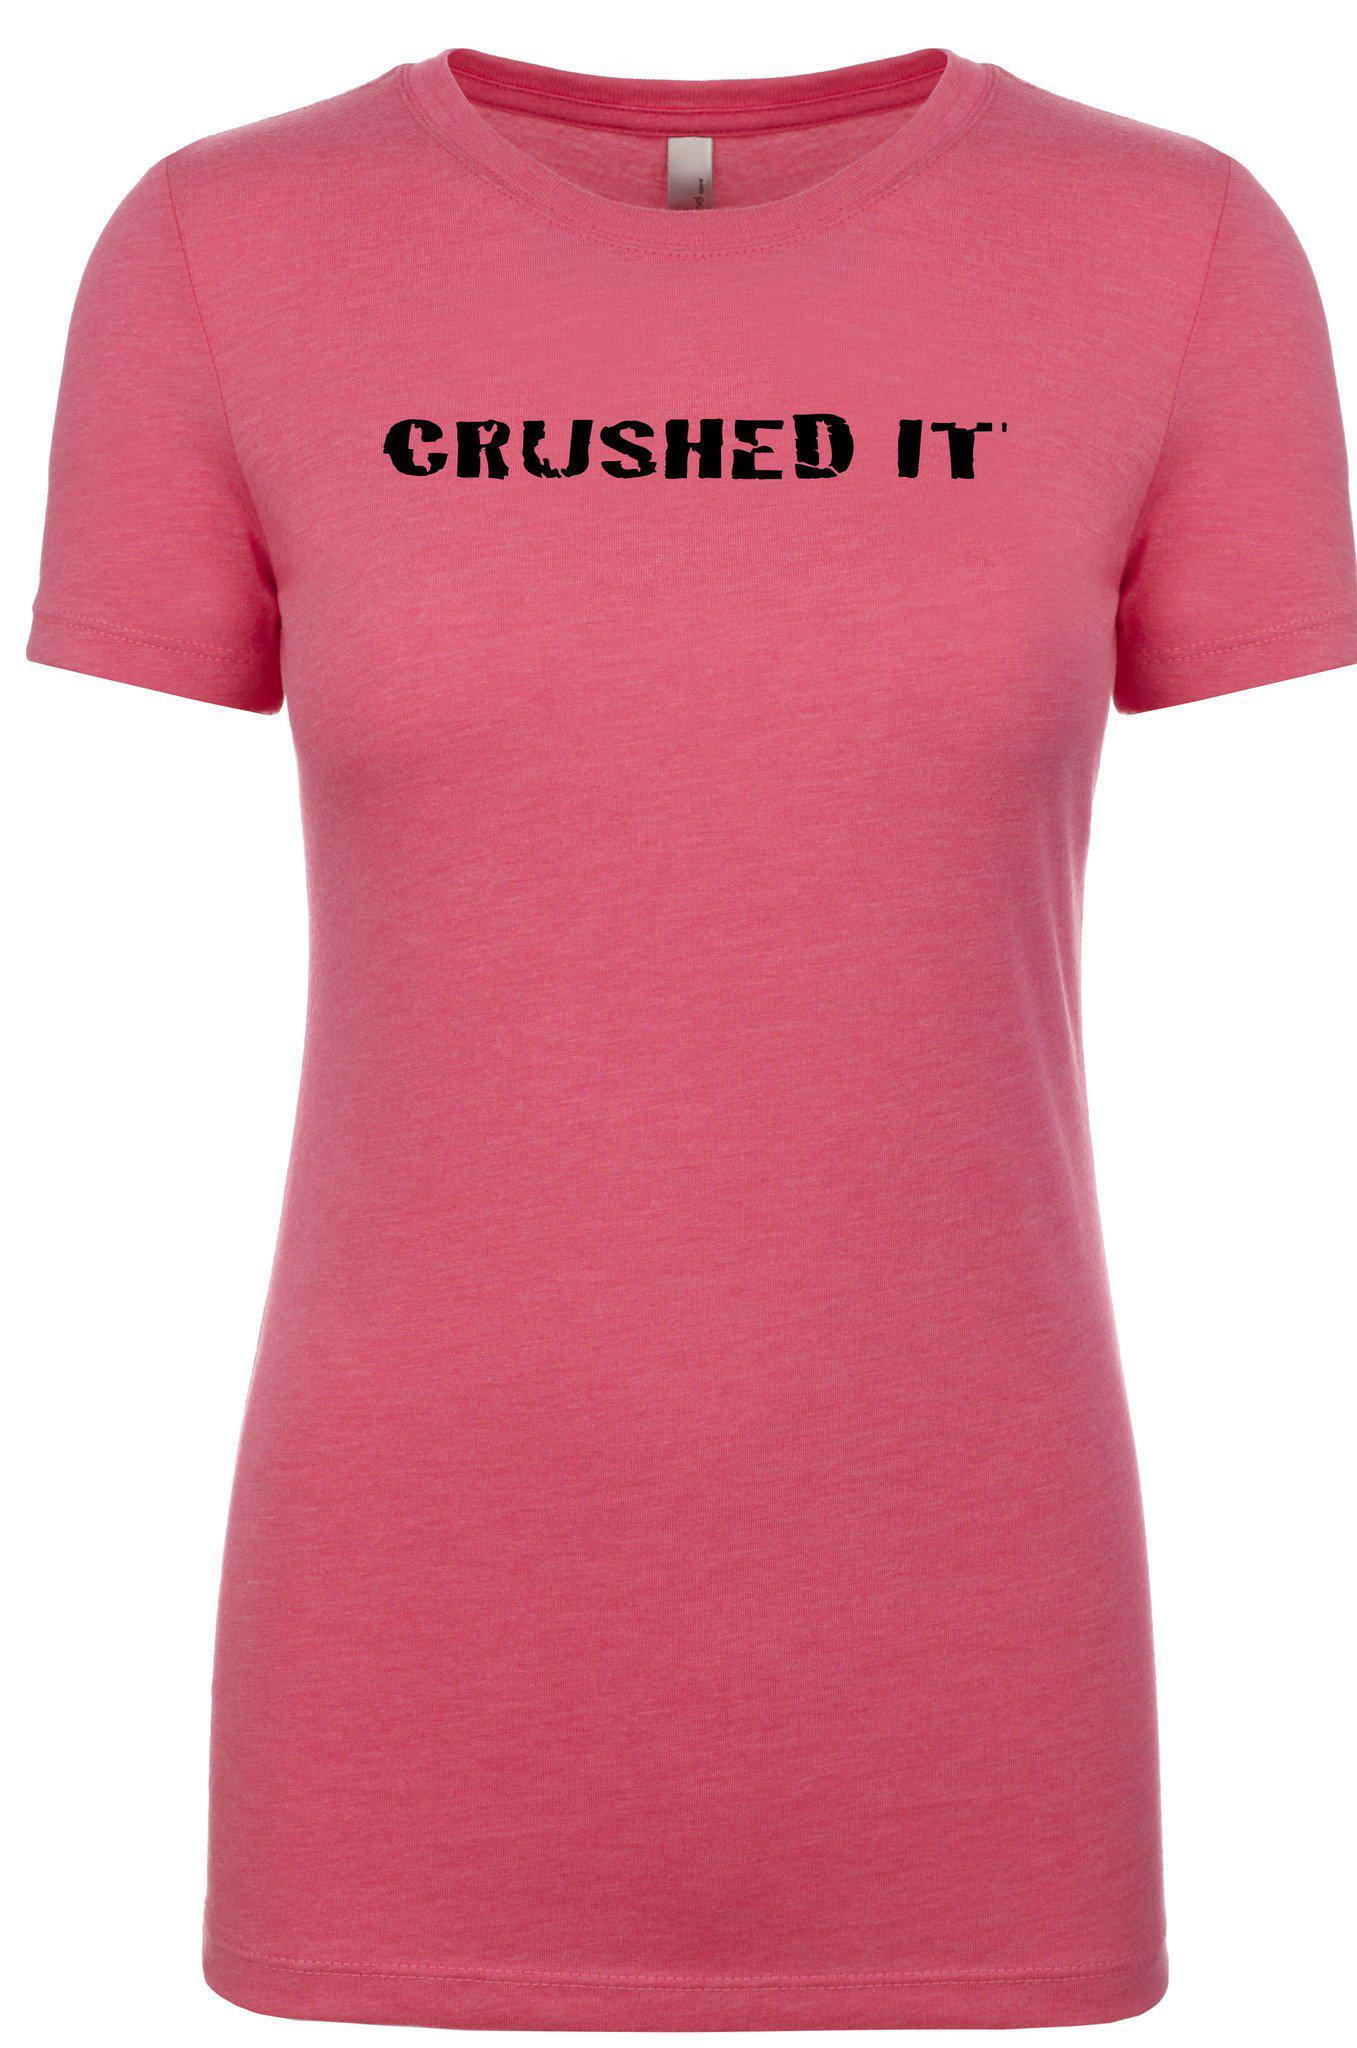 "Women's short sleeve workout athletic tshirt ""Crushed It"""